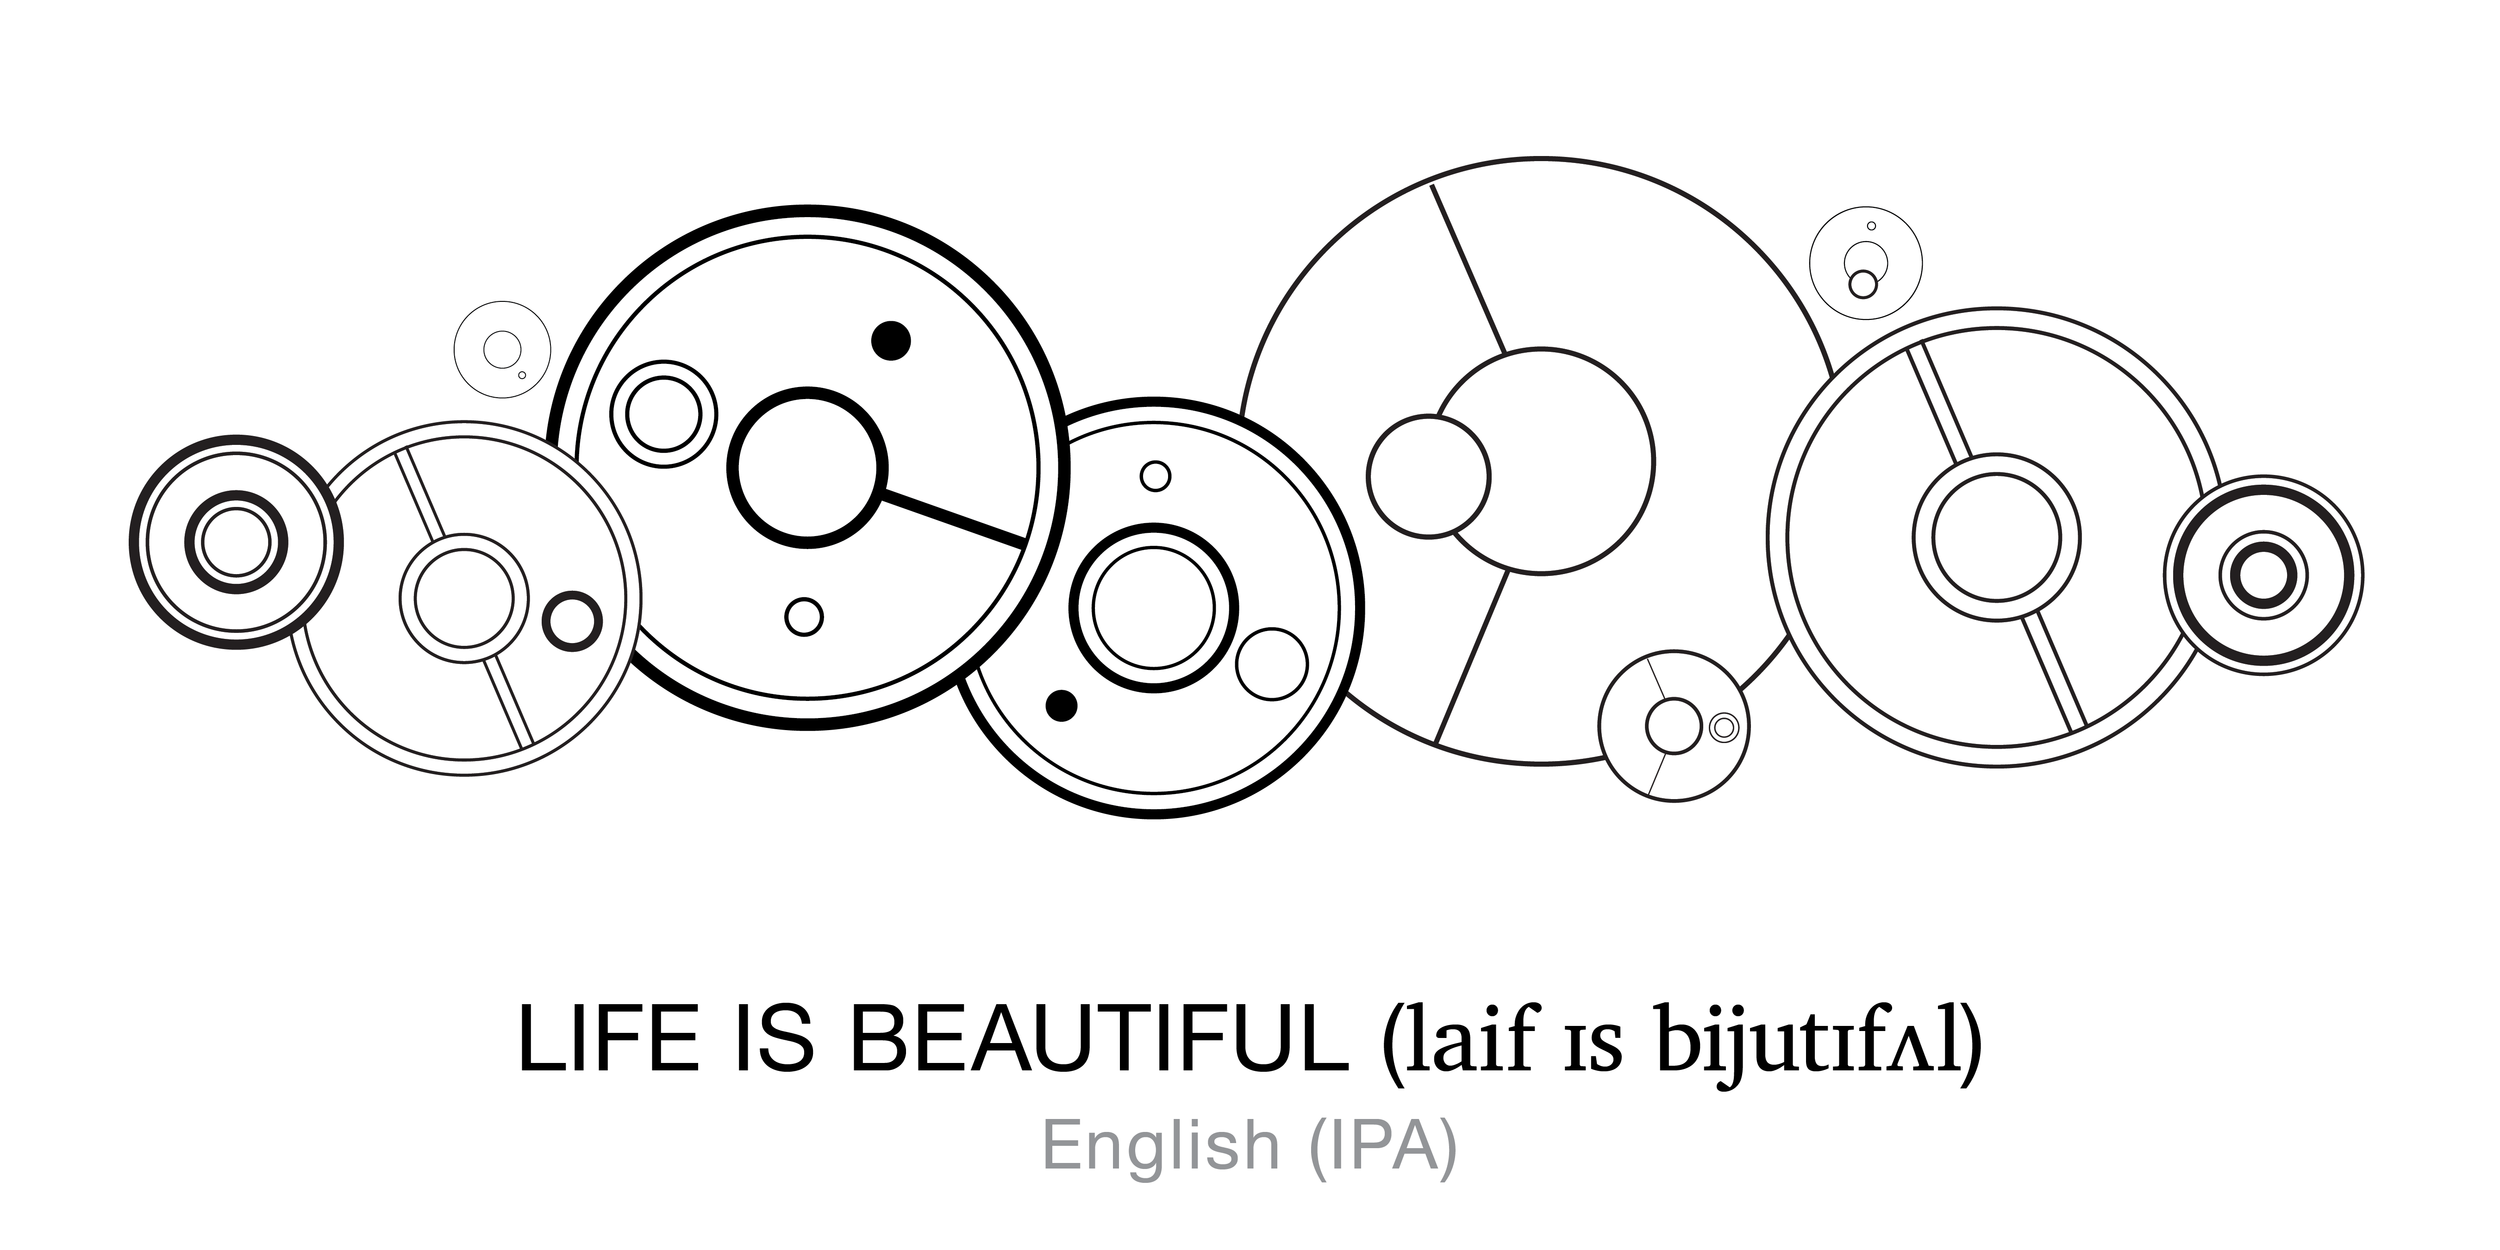 LifeIsBeautiful-03.png